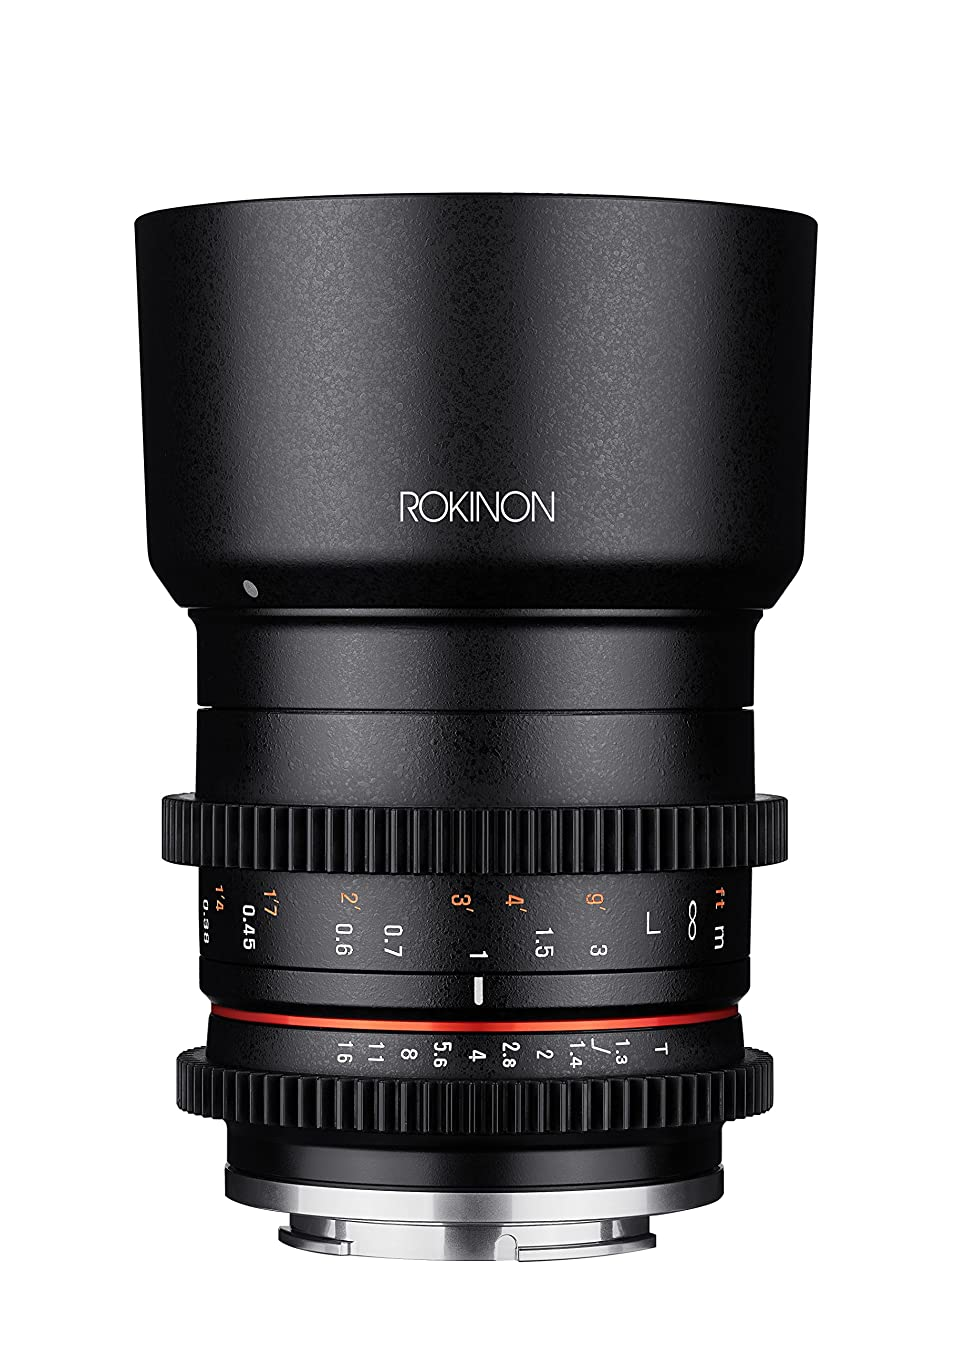 Rokinon 35mm T1.3 High Speed Wide Angle Cine Lens for Sony E-Mount (CV3512-E)